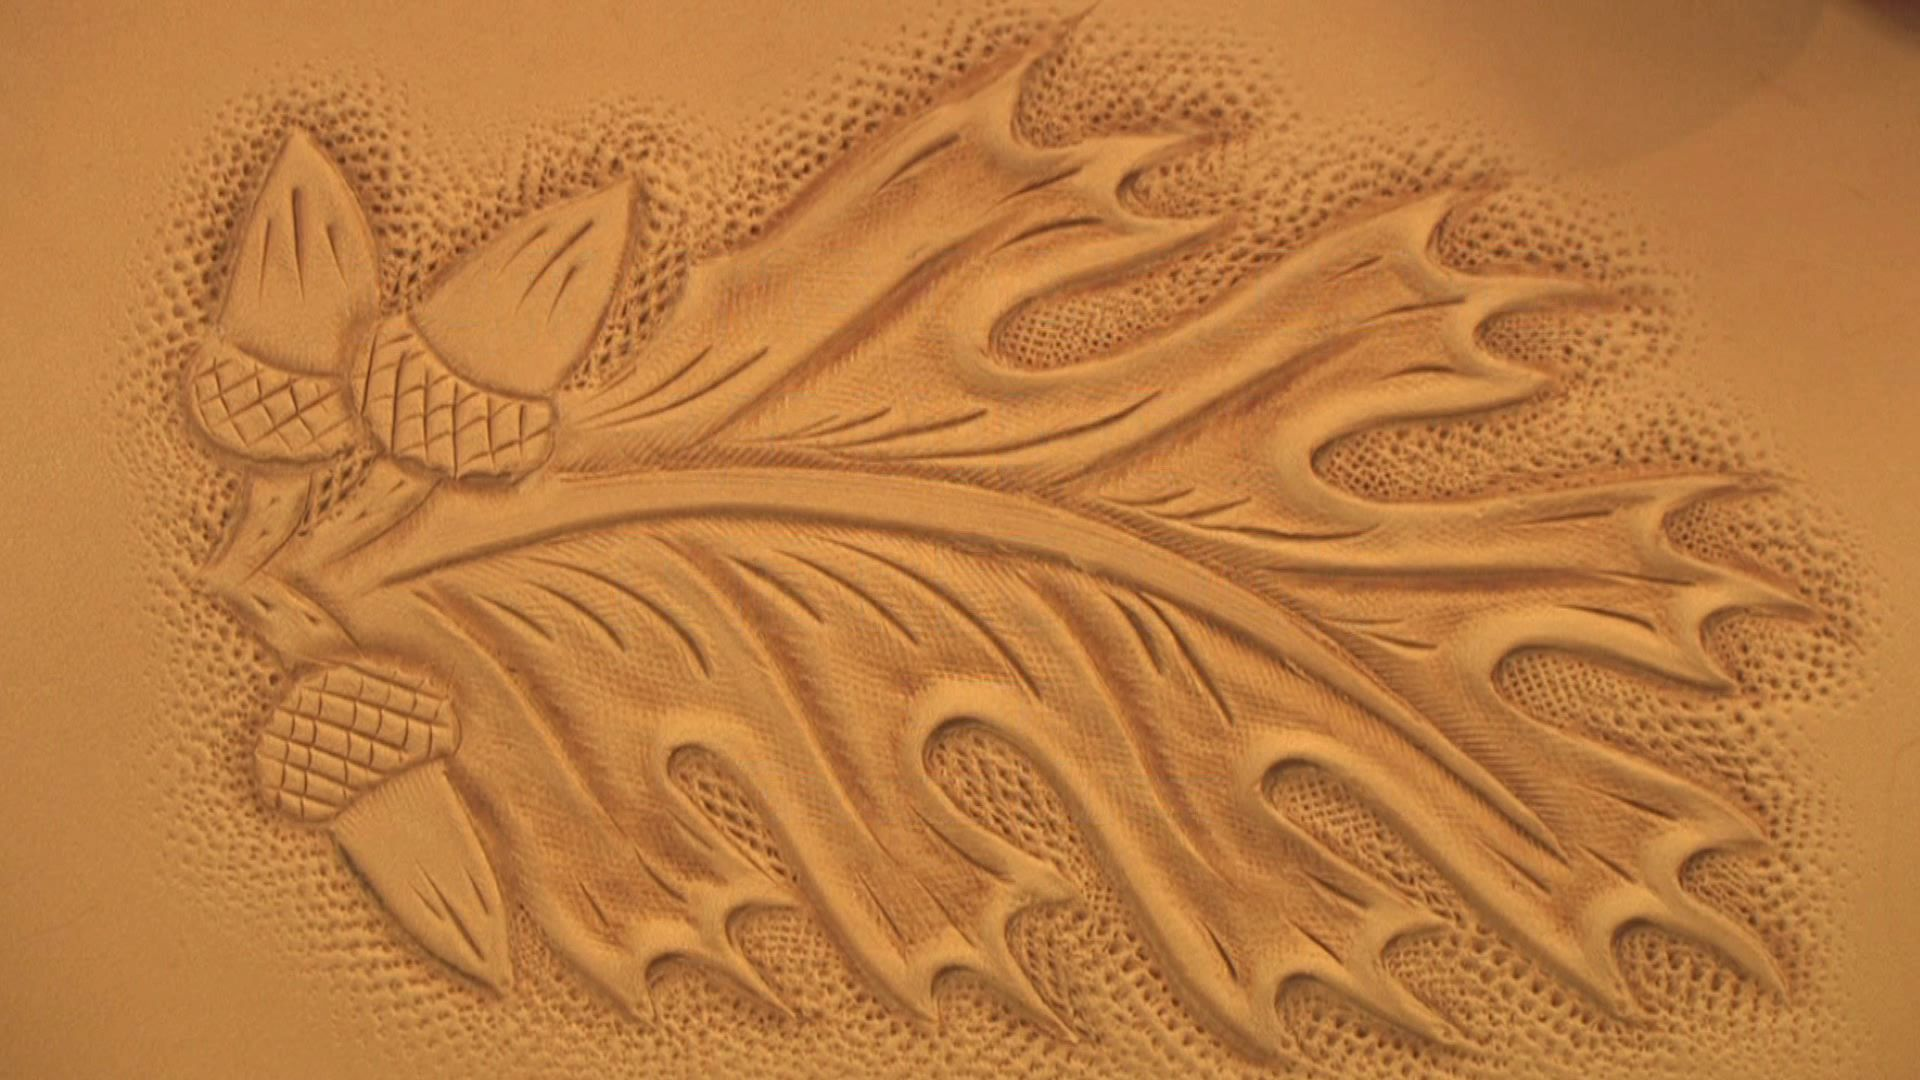 Oak leaf leather carving pattern pixshark